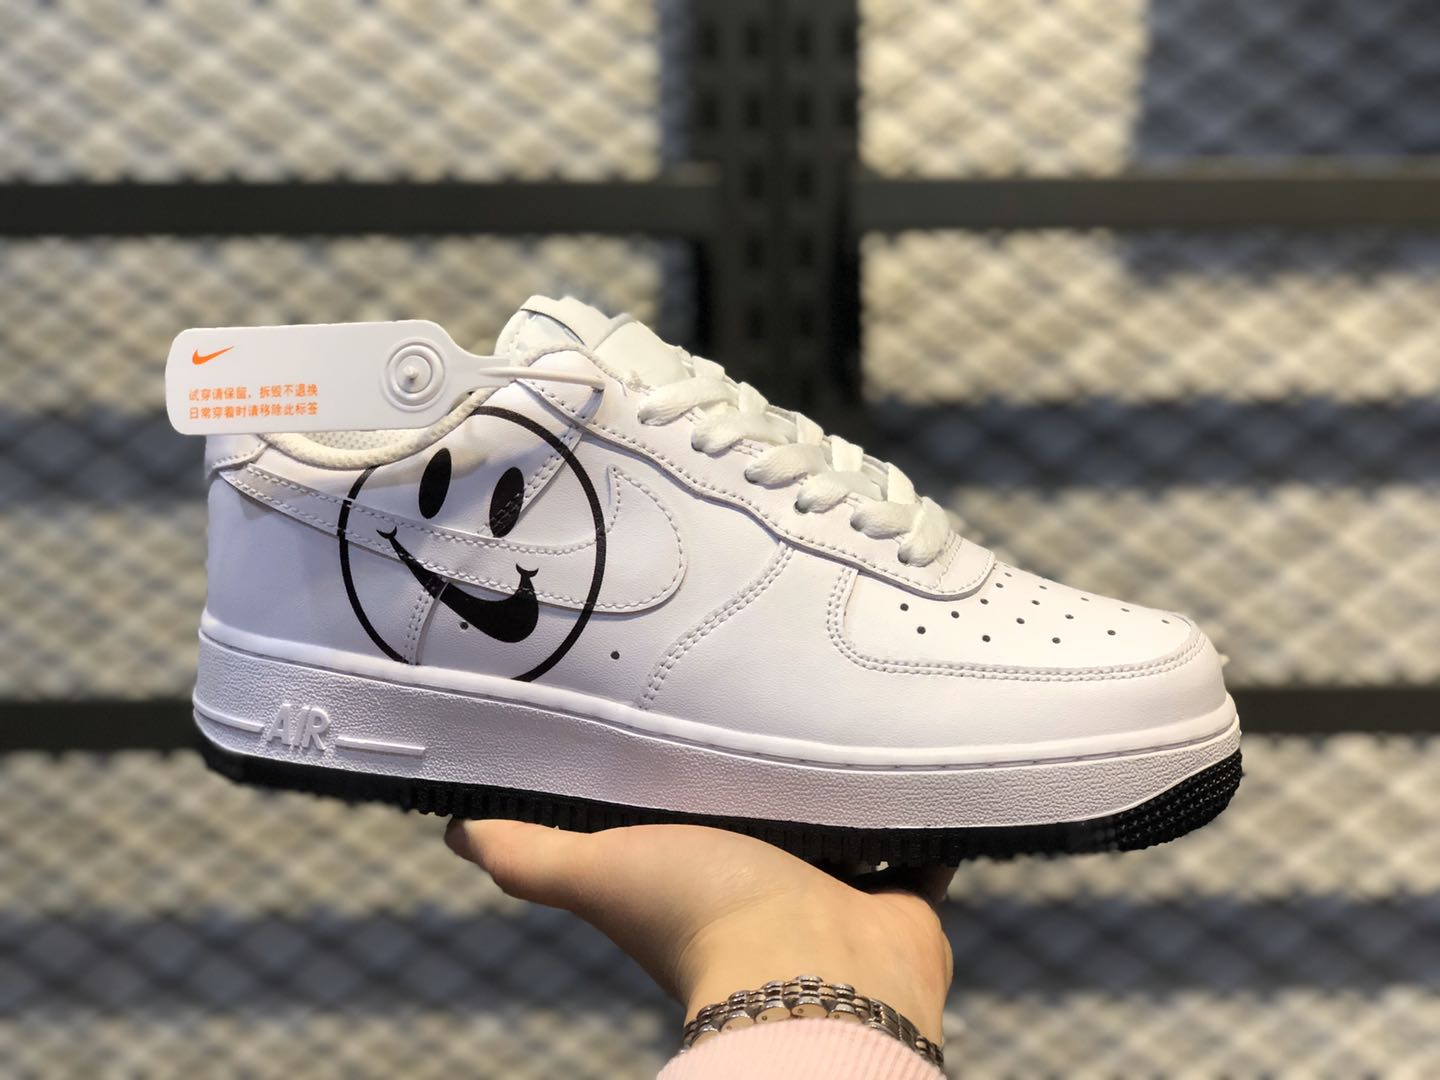 Nike Air Force 1 Low GS Have a Nike Day White/Black AV0742-100